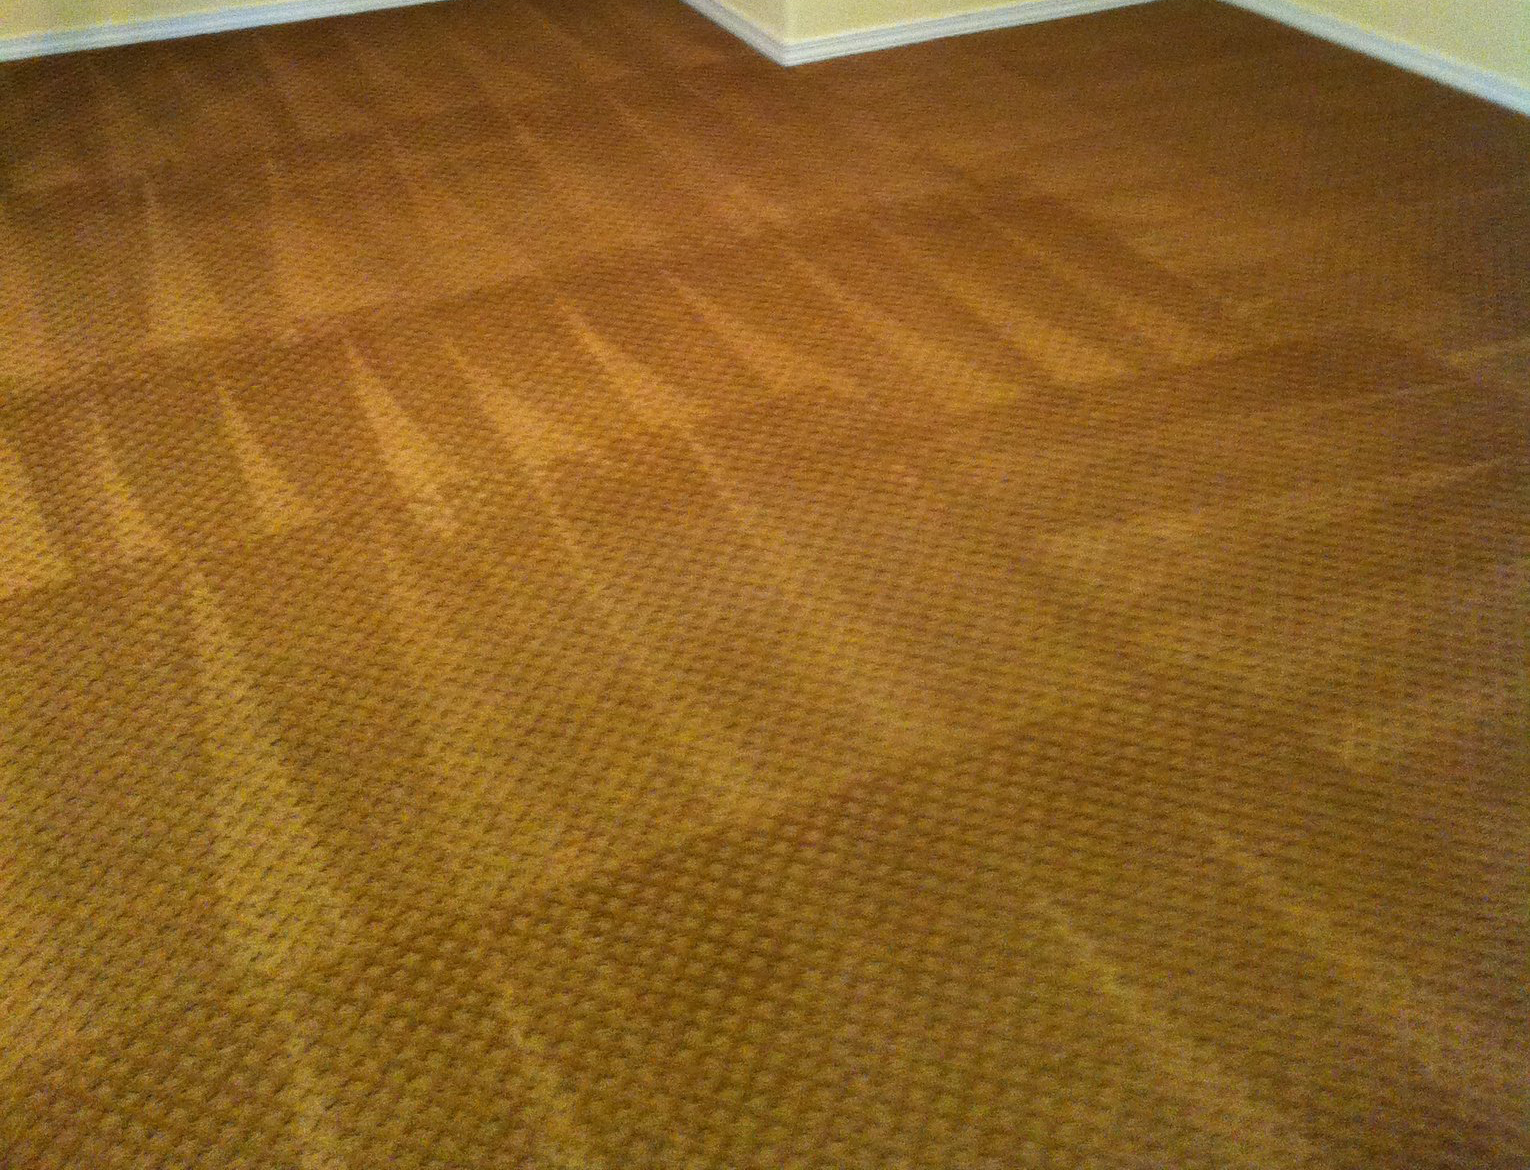 carpet cleaning project 2